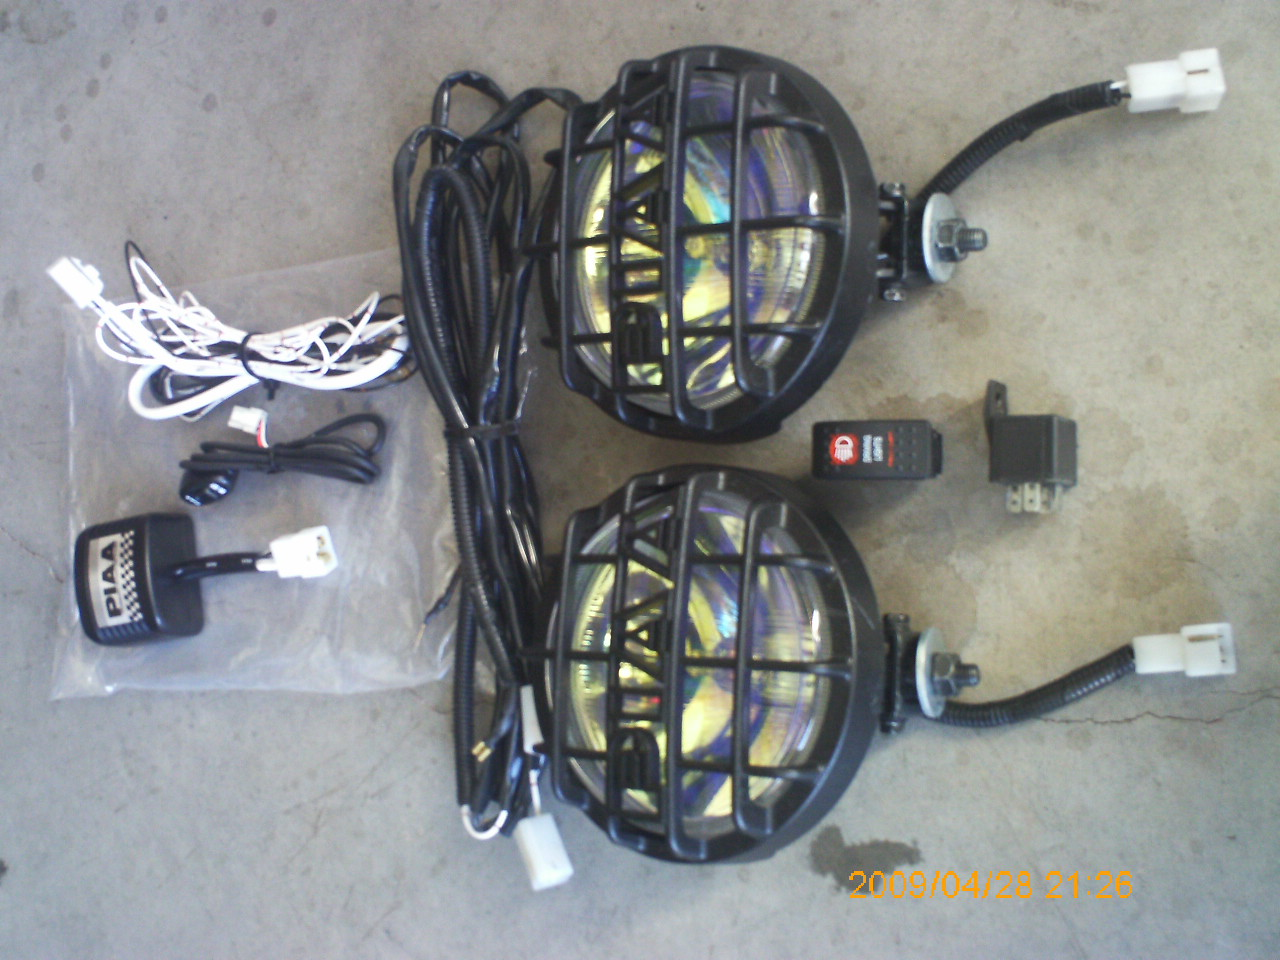 40609d1358641231 sale piaa 510 520 off road lights ptdc0008 nissan frontier forum view single post for sale piaa 510 Chevy Wiring Harness at suagrazia.org